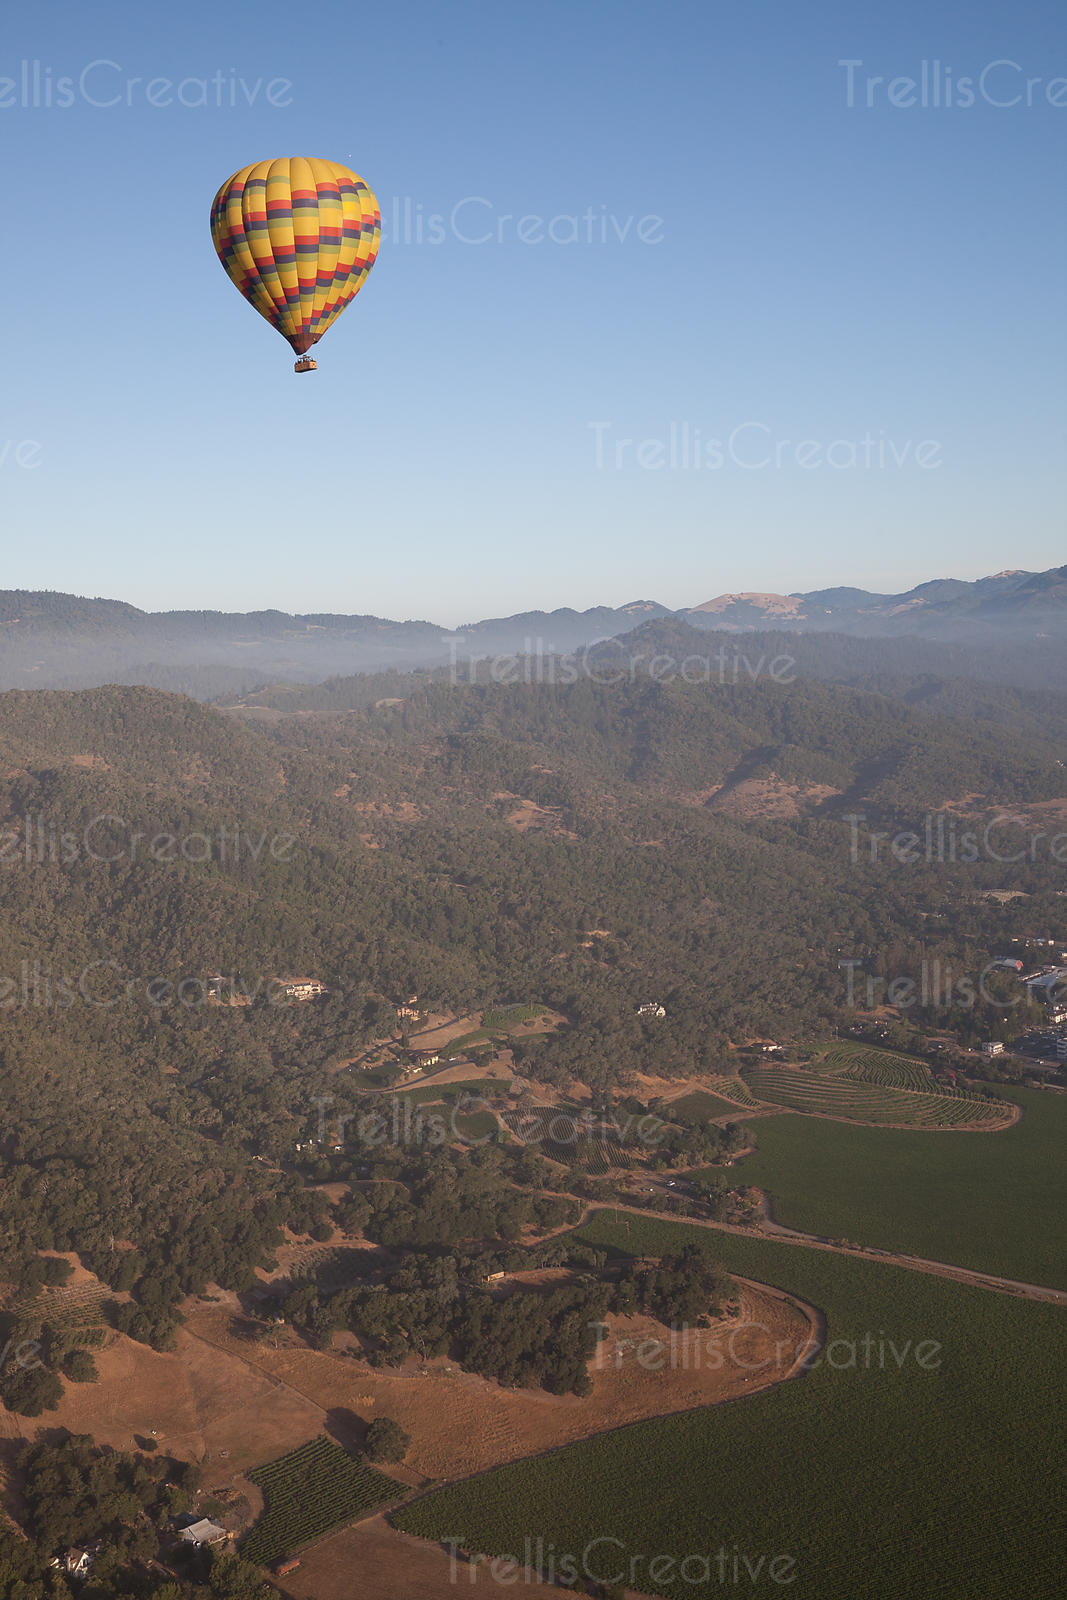 Hot air balloon drifting over vineyards in Napa Valley, California